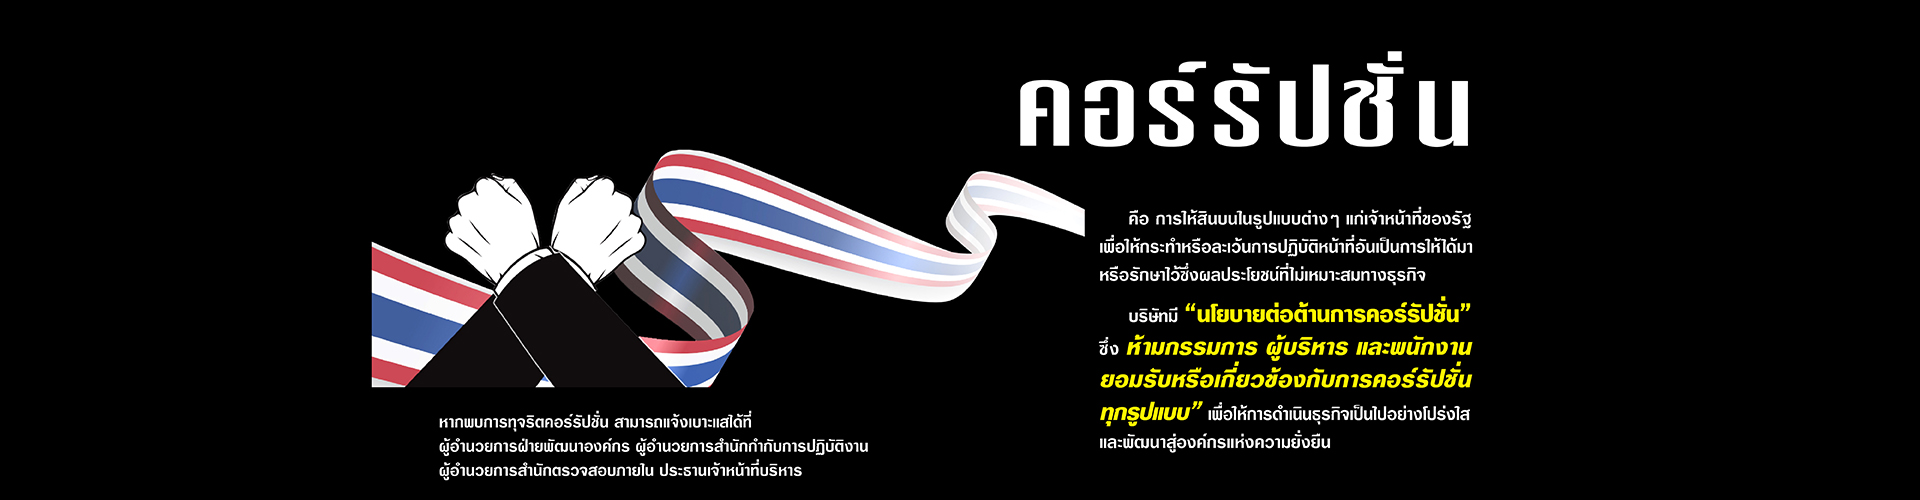 https://www.navakij.co.th/irfile/FilesUpload/jpg/Banner_คอร์รัปชั่น-20200528102032.jpg